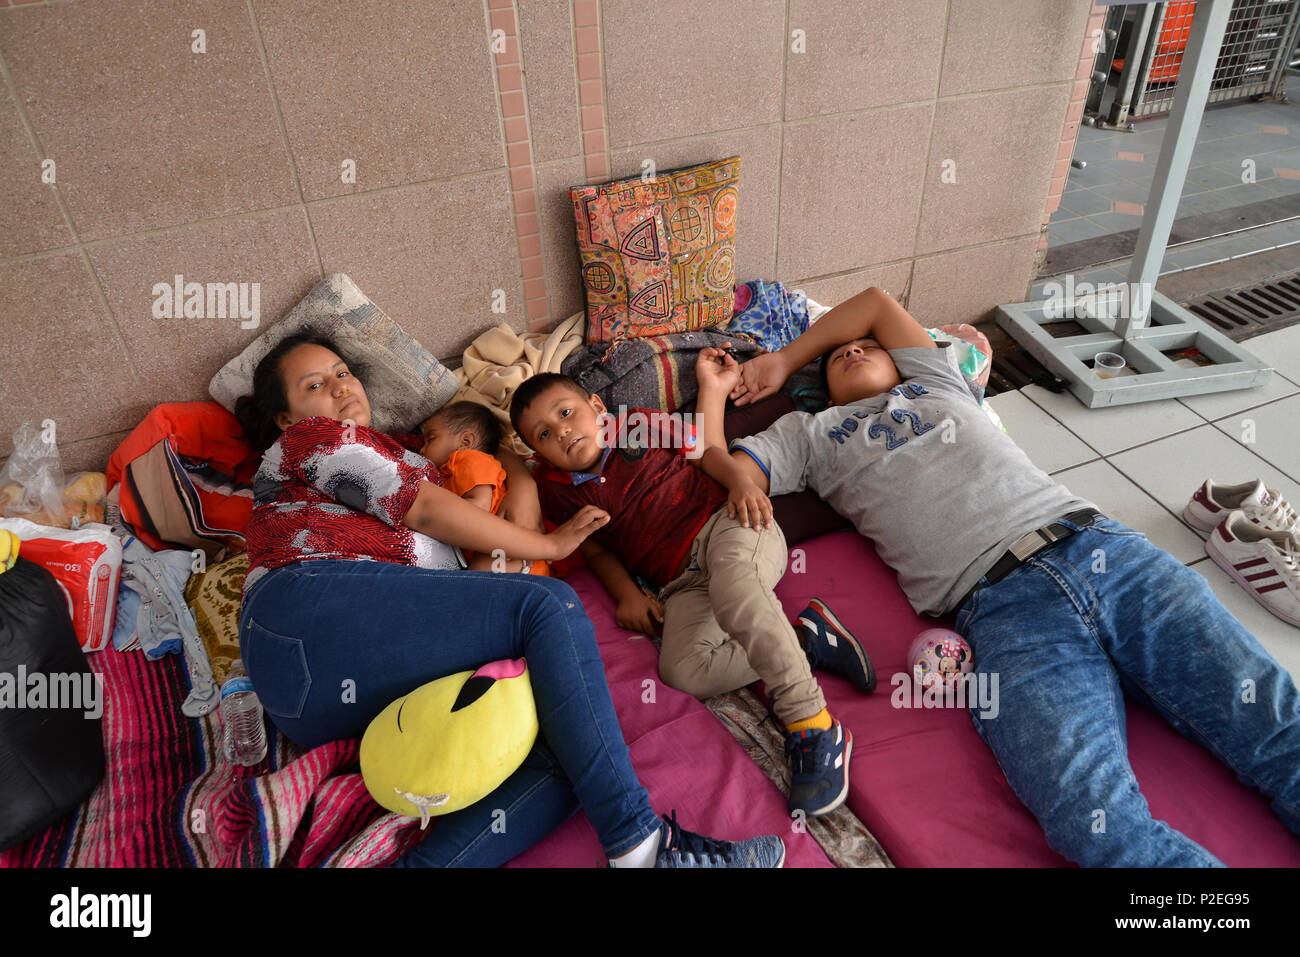 Families from Guatemala and Mexico seeking asylum in the United States wait for many days at the port-of-entry in Nogales, Sonora, Mexico for US offic Stock Photo